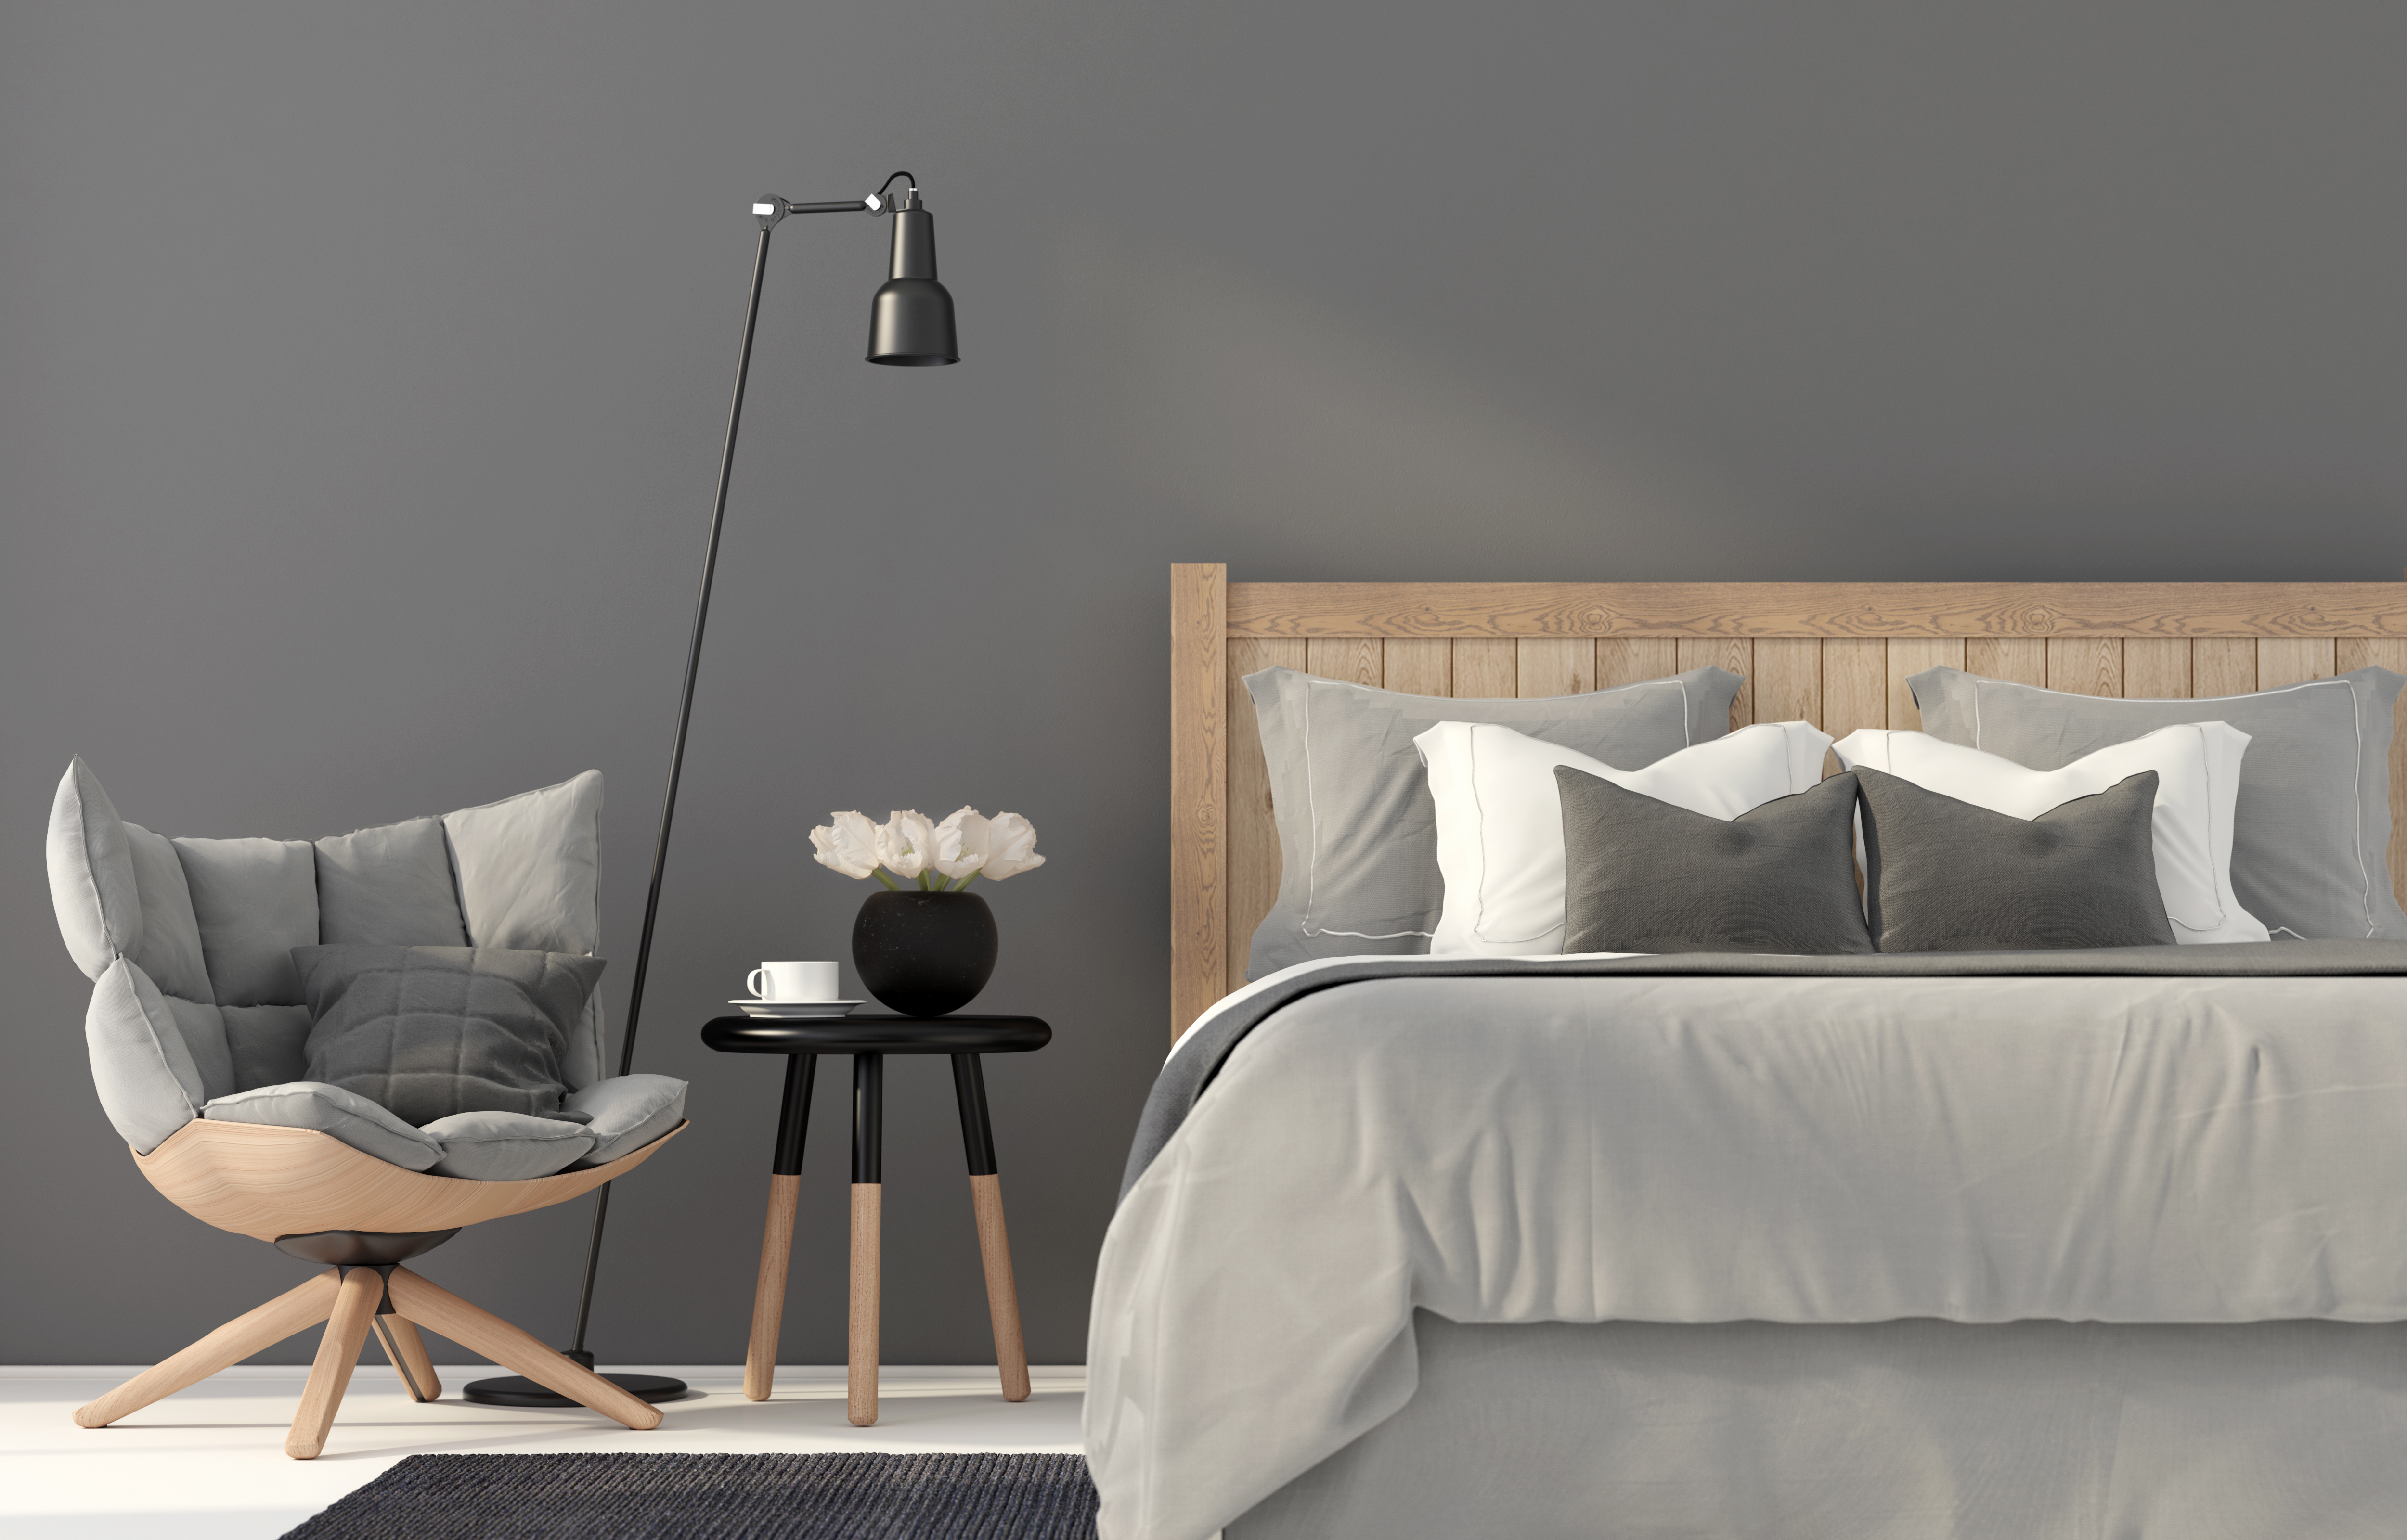 How To Remodel A Bedroom With Ease